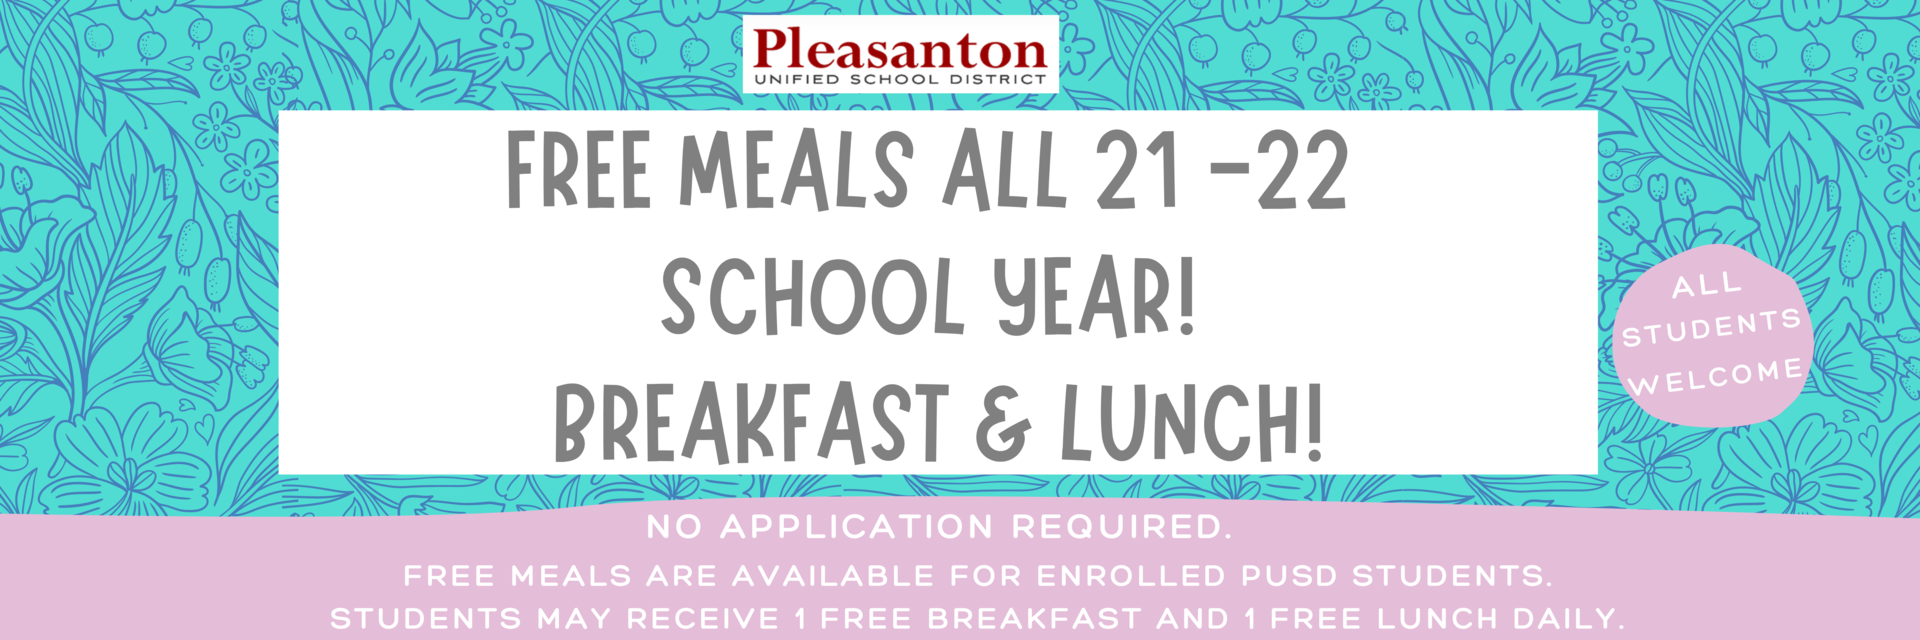 Free Meals for 2021 - 2022!